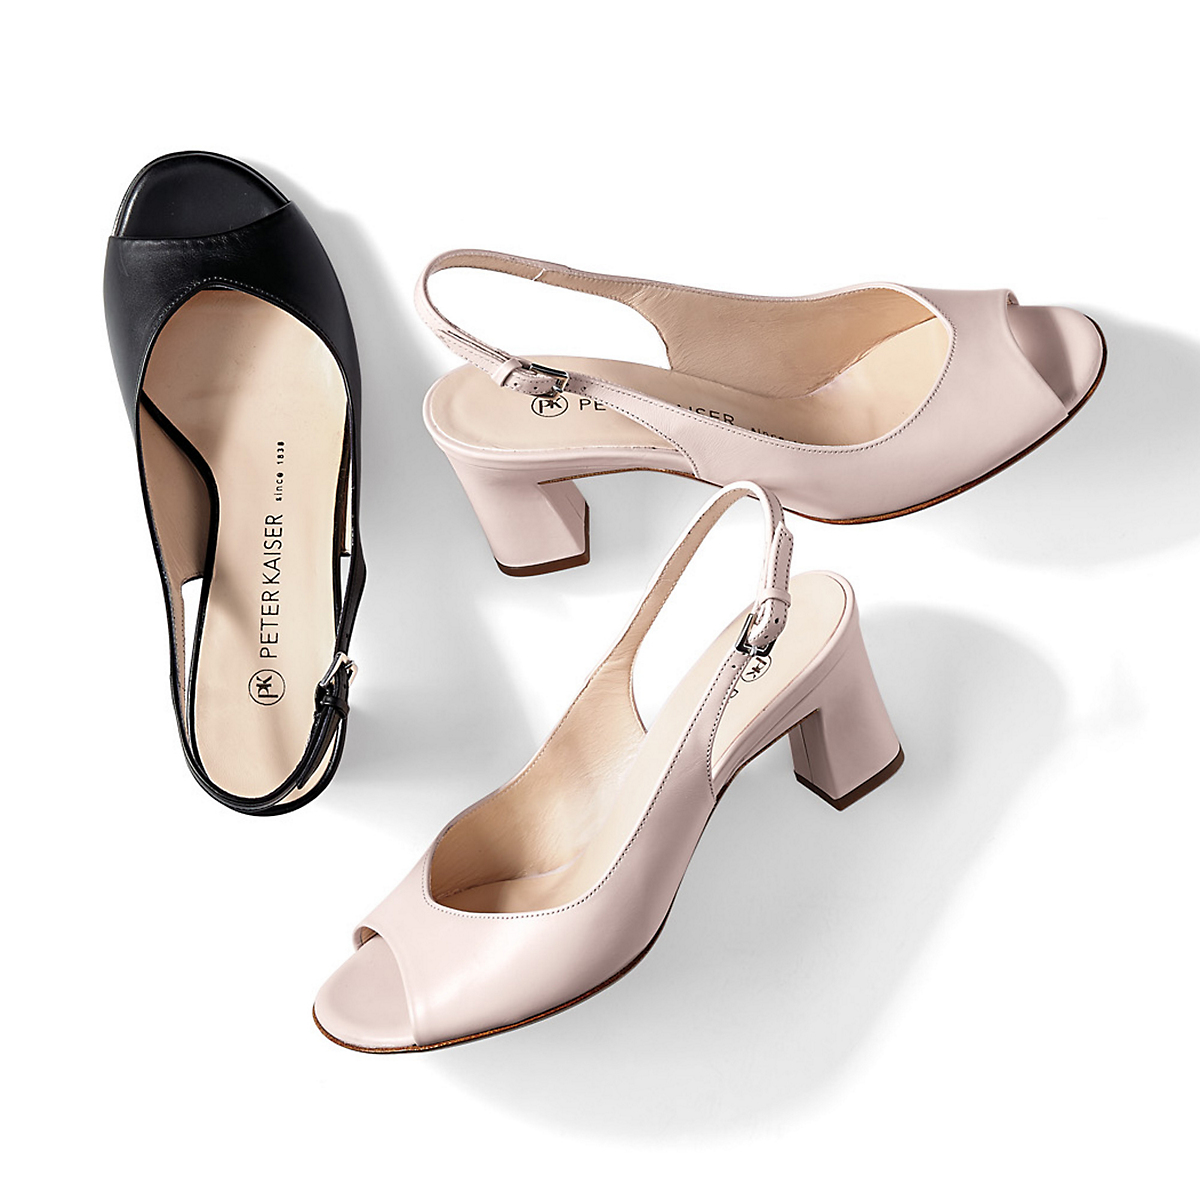 Peter Kaiser Heike Pumps